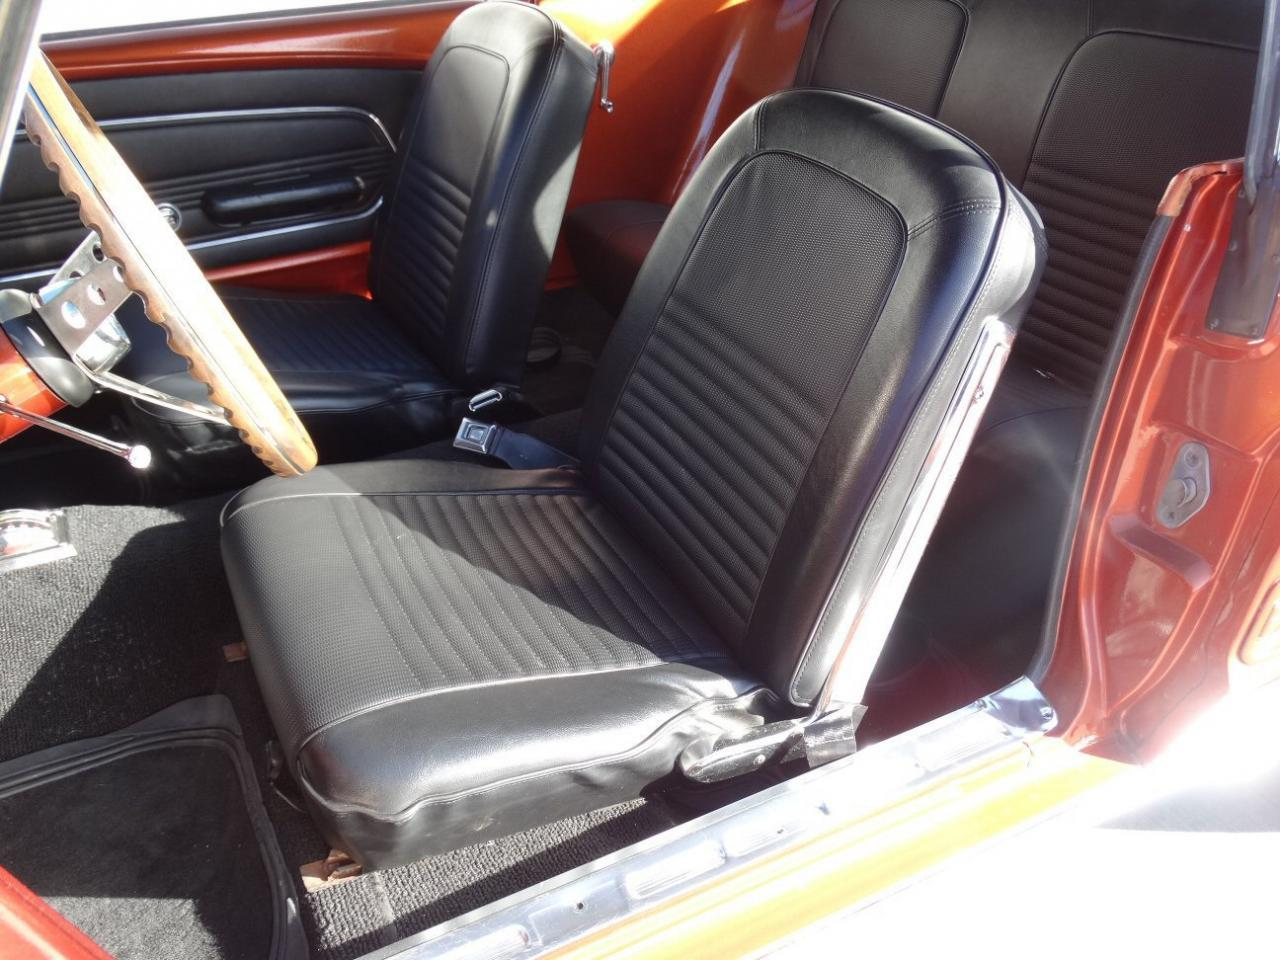 Large Picture of 1967 Ford Mustang located in Georgia - $19,995.00 Offered by Gateway Classic Cars - Atlanta - KF5L